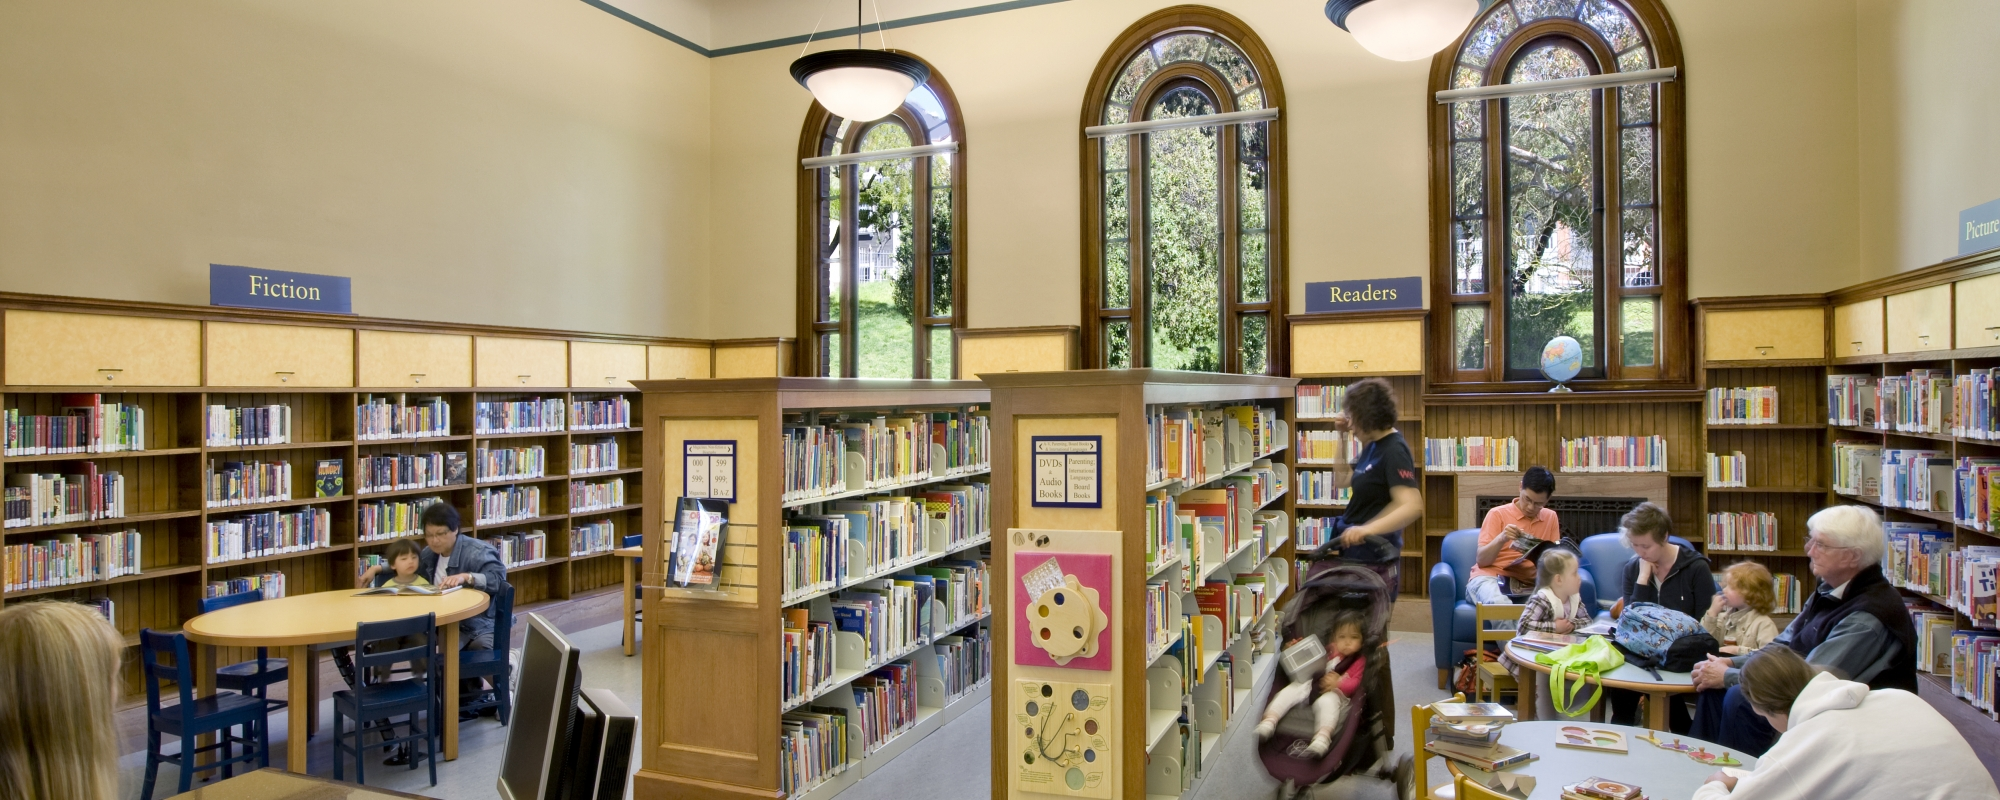 Presidio Branch Library